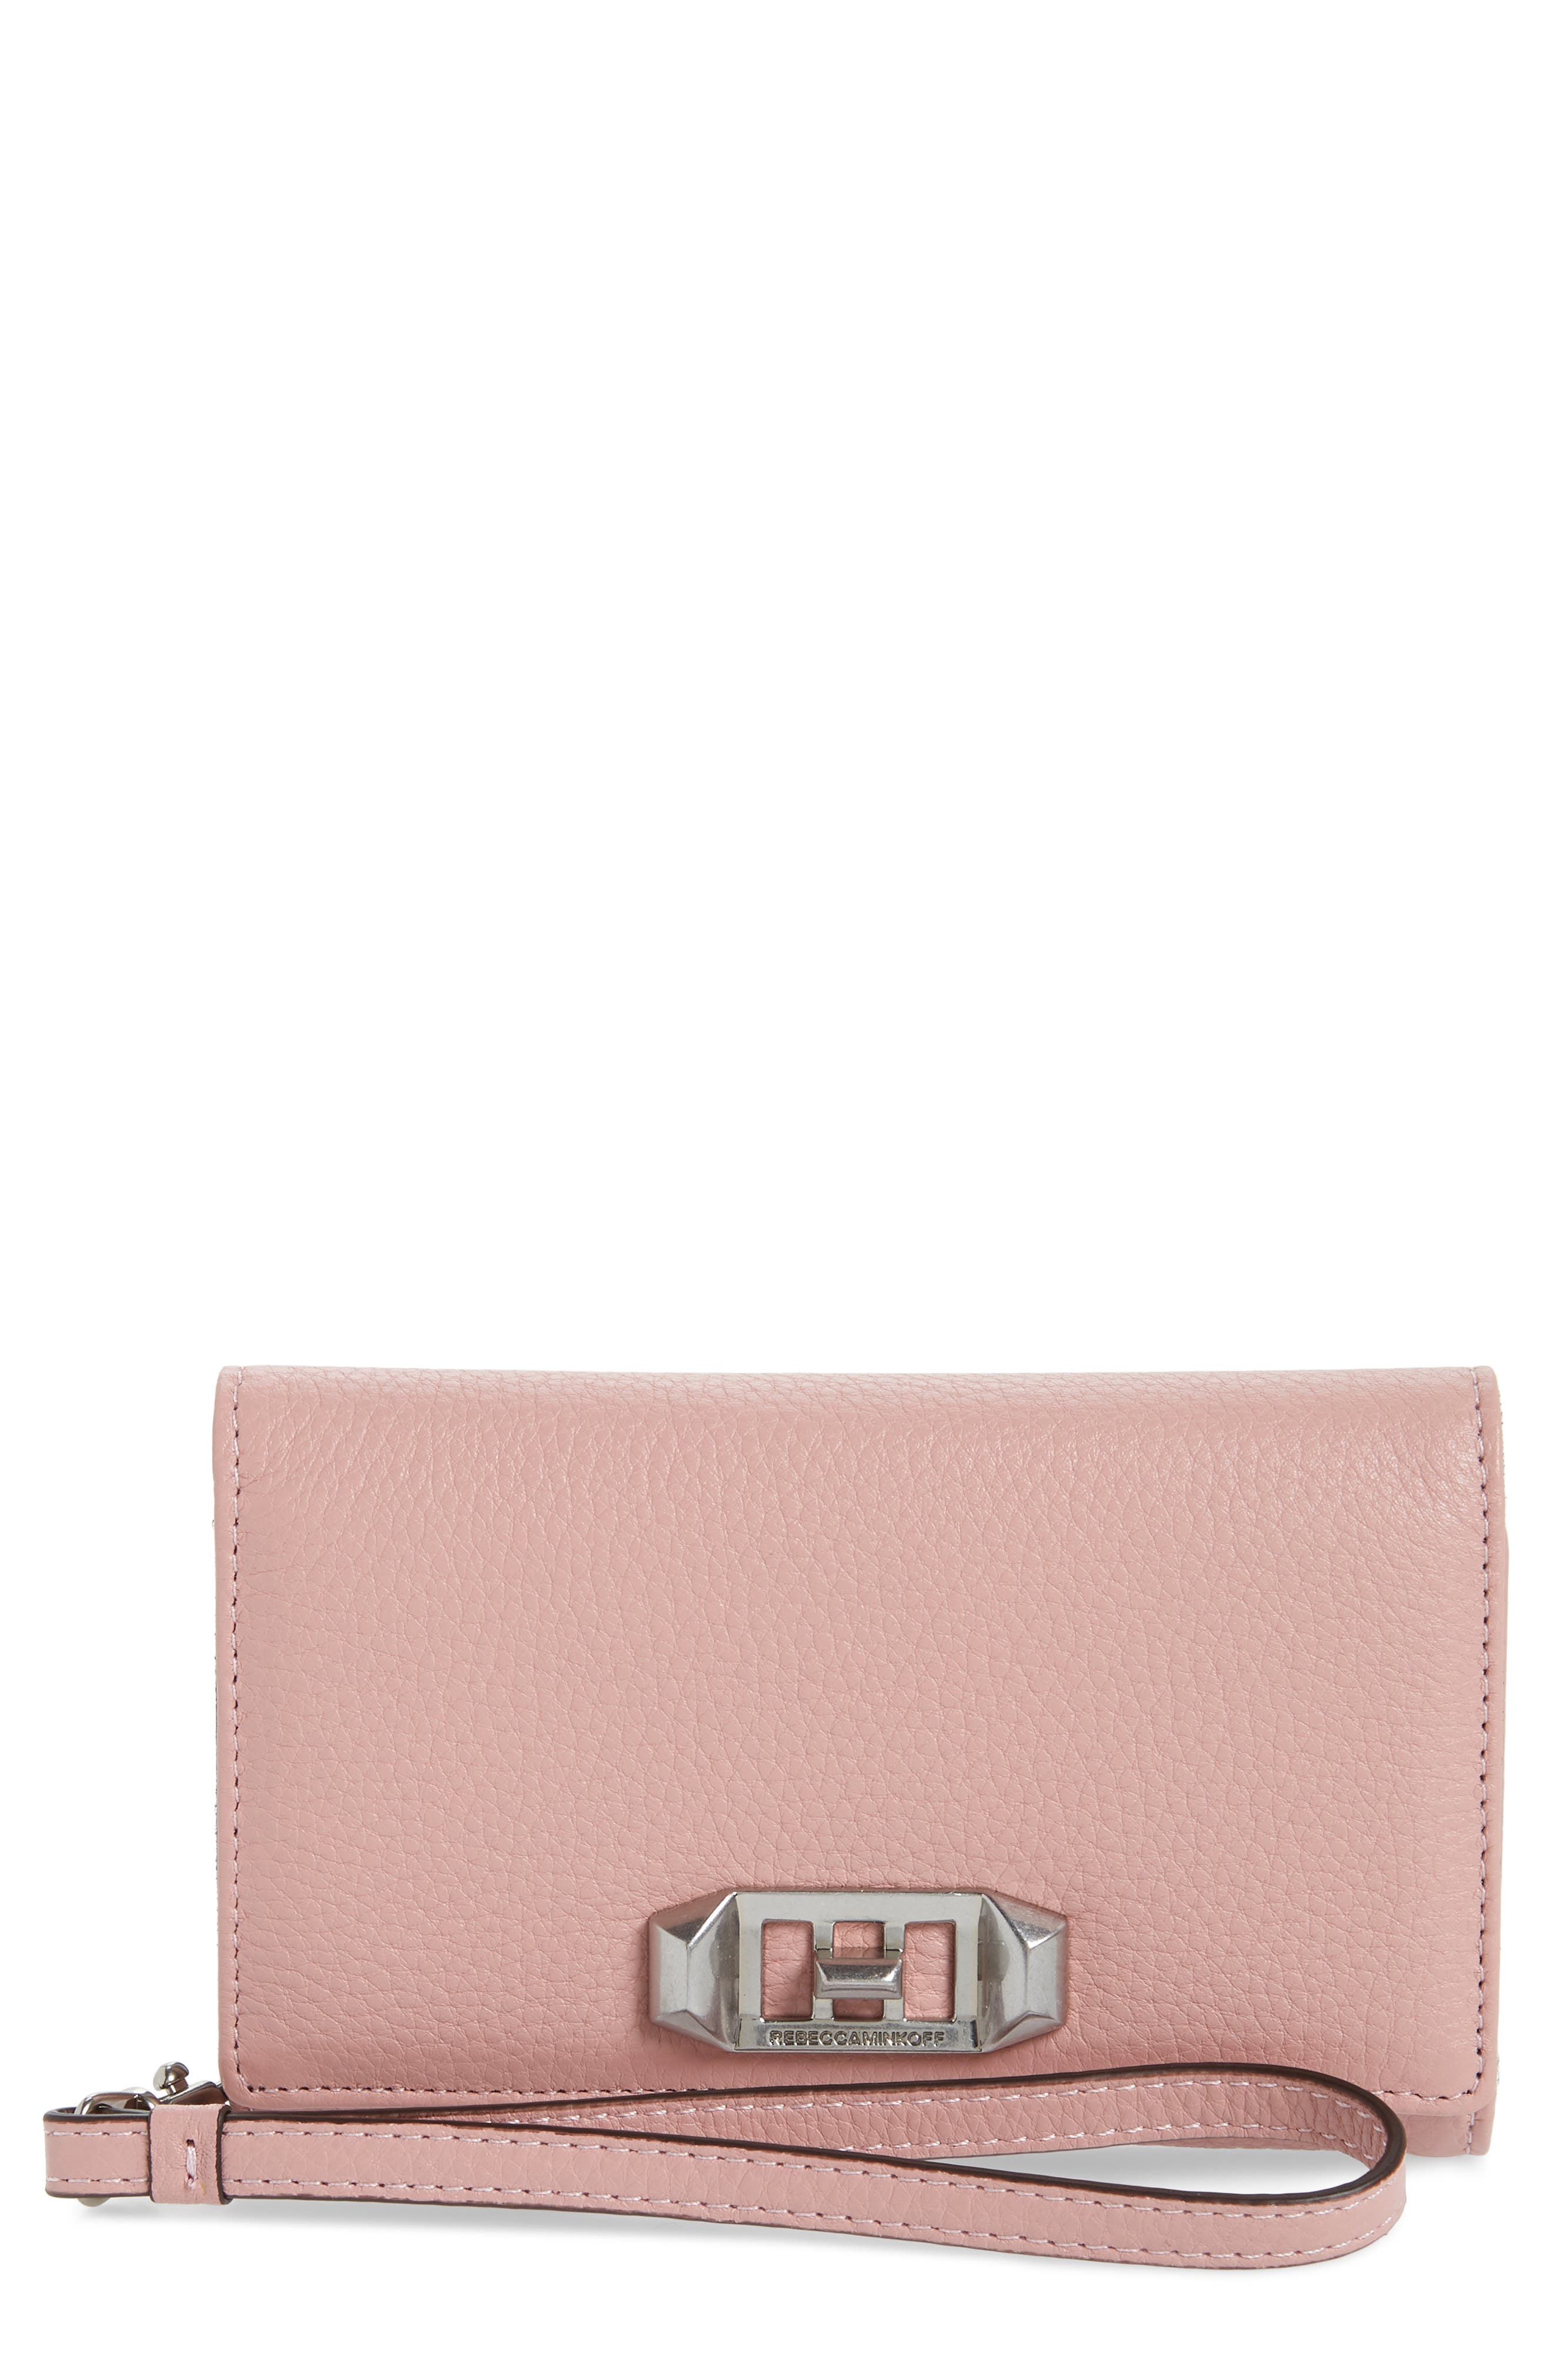 Rebecca Minkoff Love Lock iPhone 7/8 & 7/8 Plus Leather Wristlet Folio